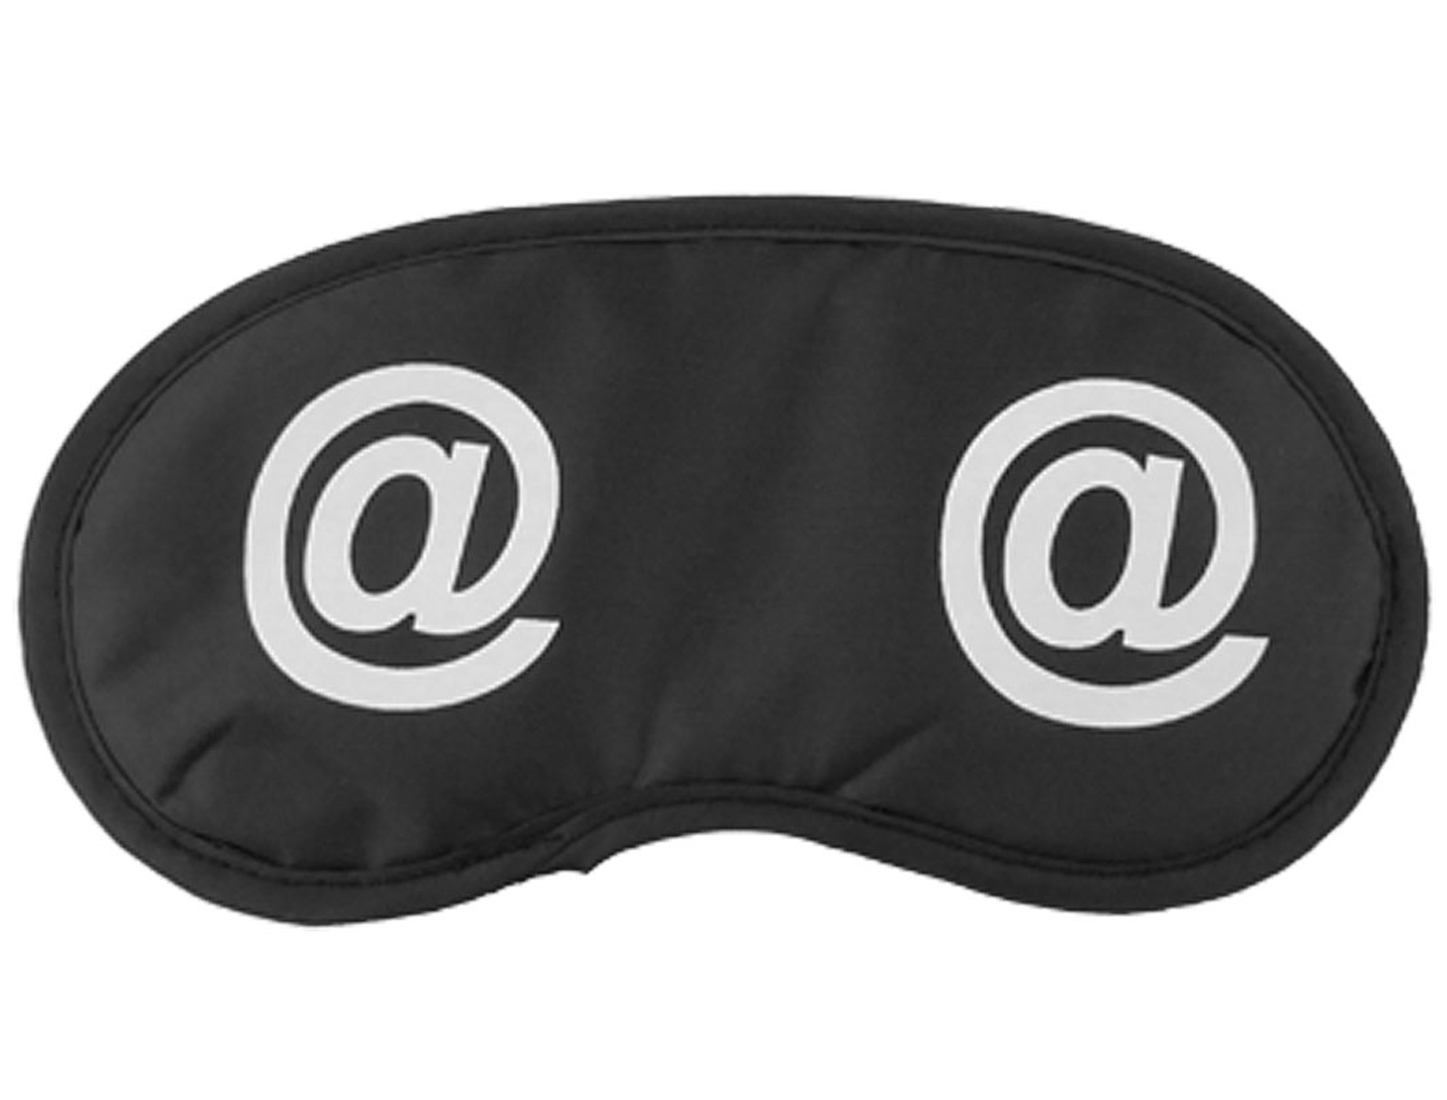 Cartoon Style Travel Sleeping Eye Mask Eyeshade Black